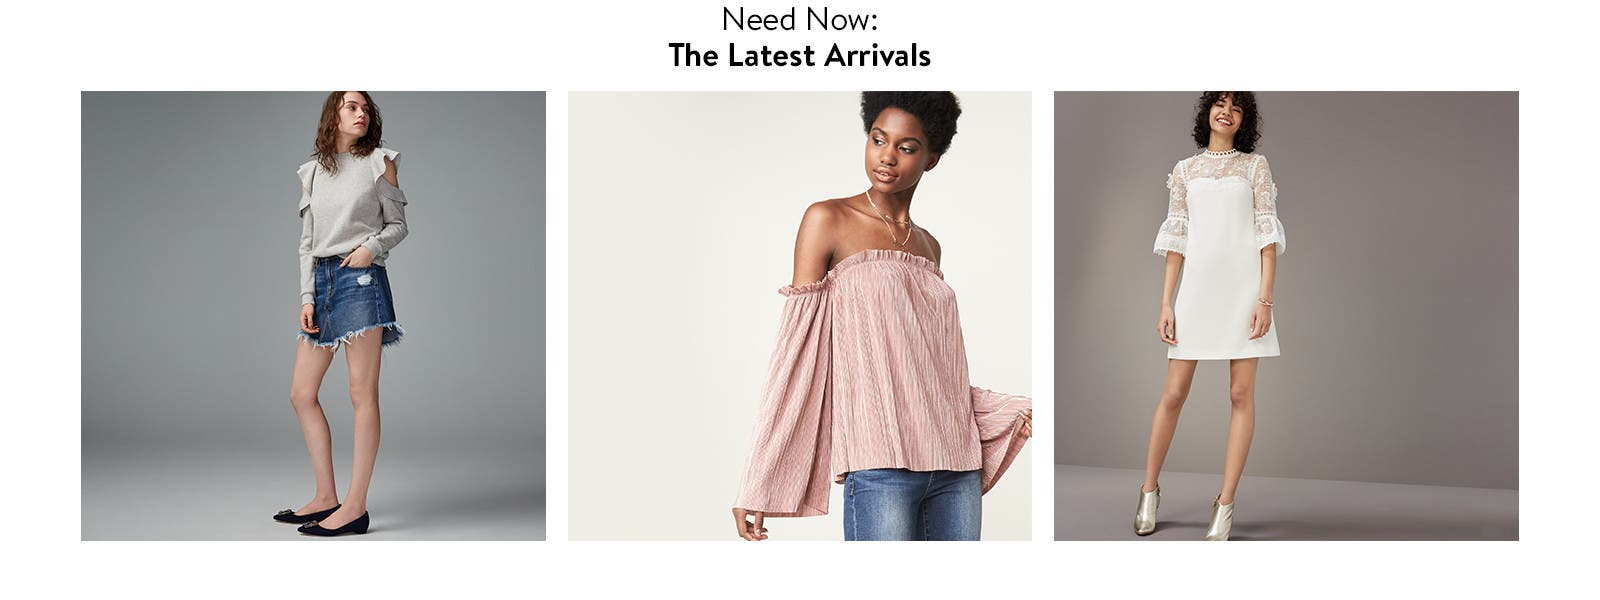 Need now: new arrivals in tops, dresses, jeans and denim.